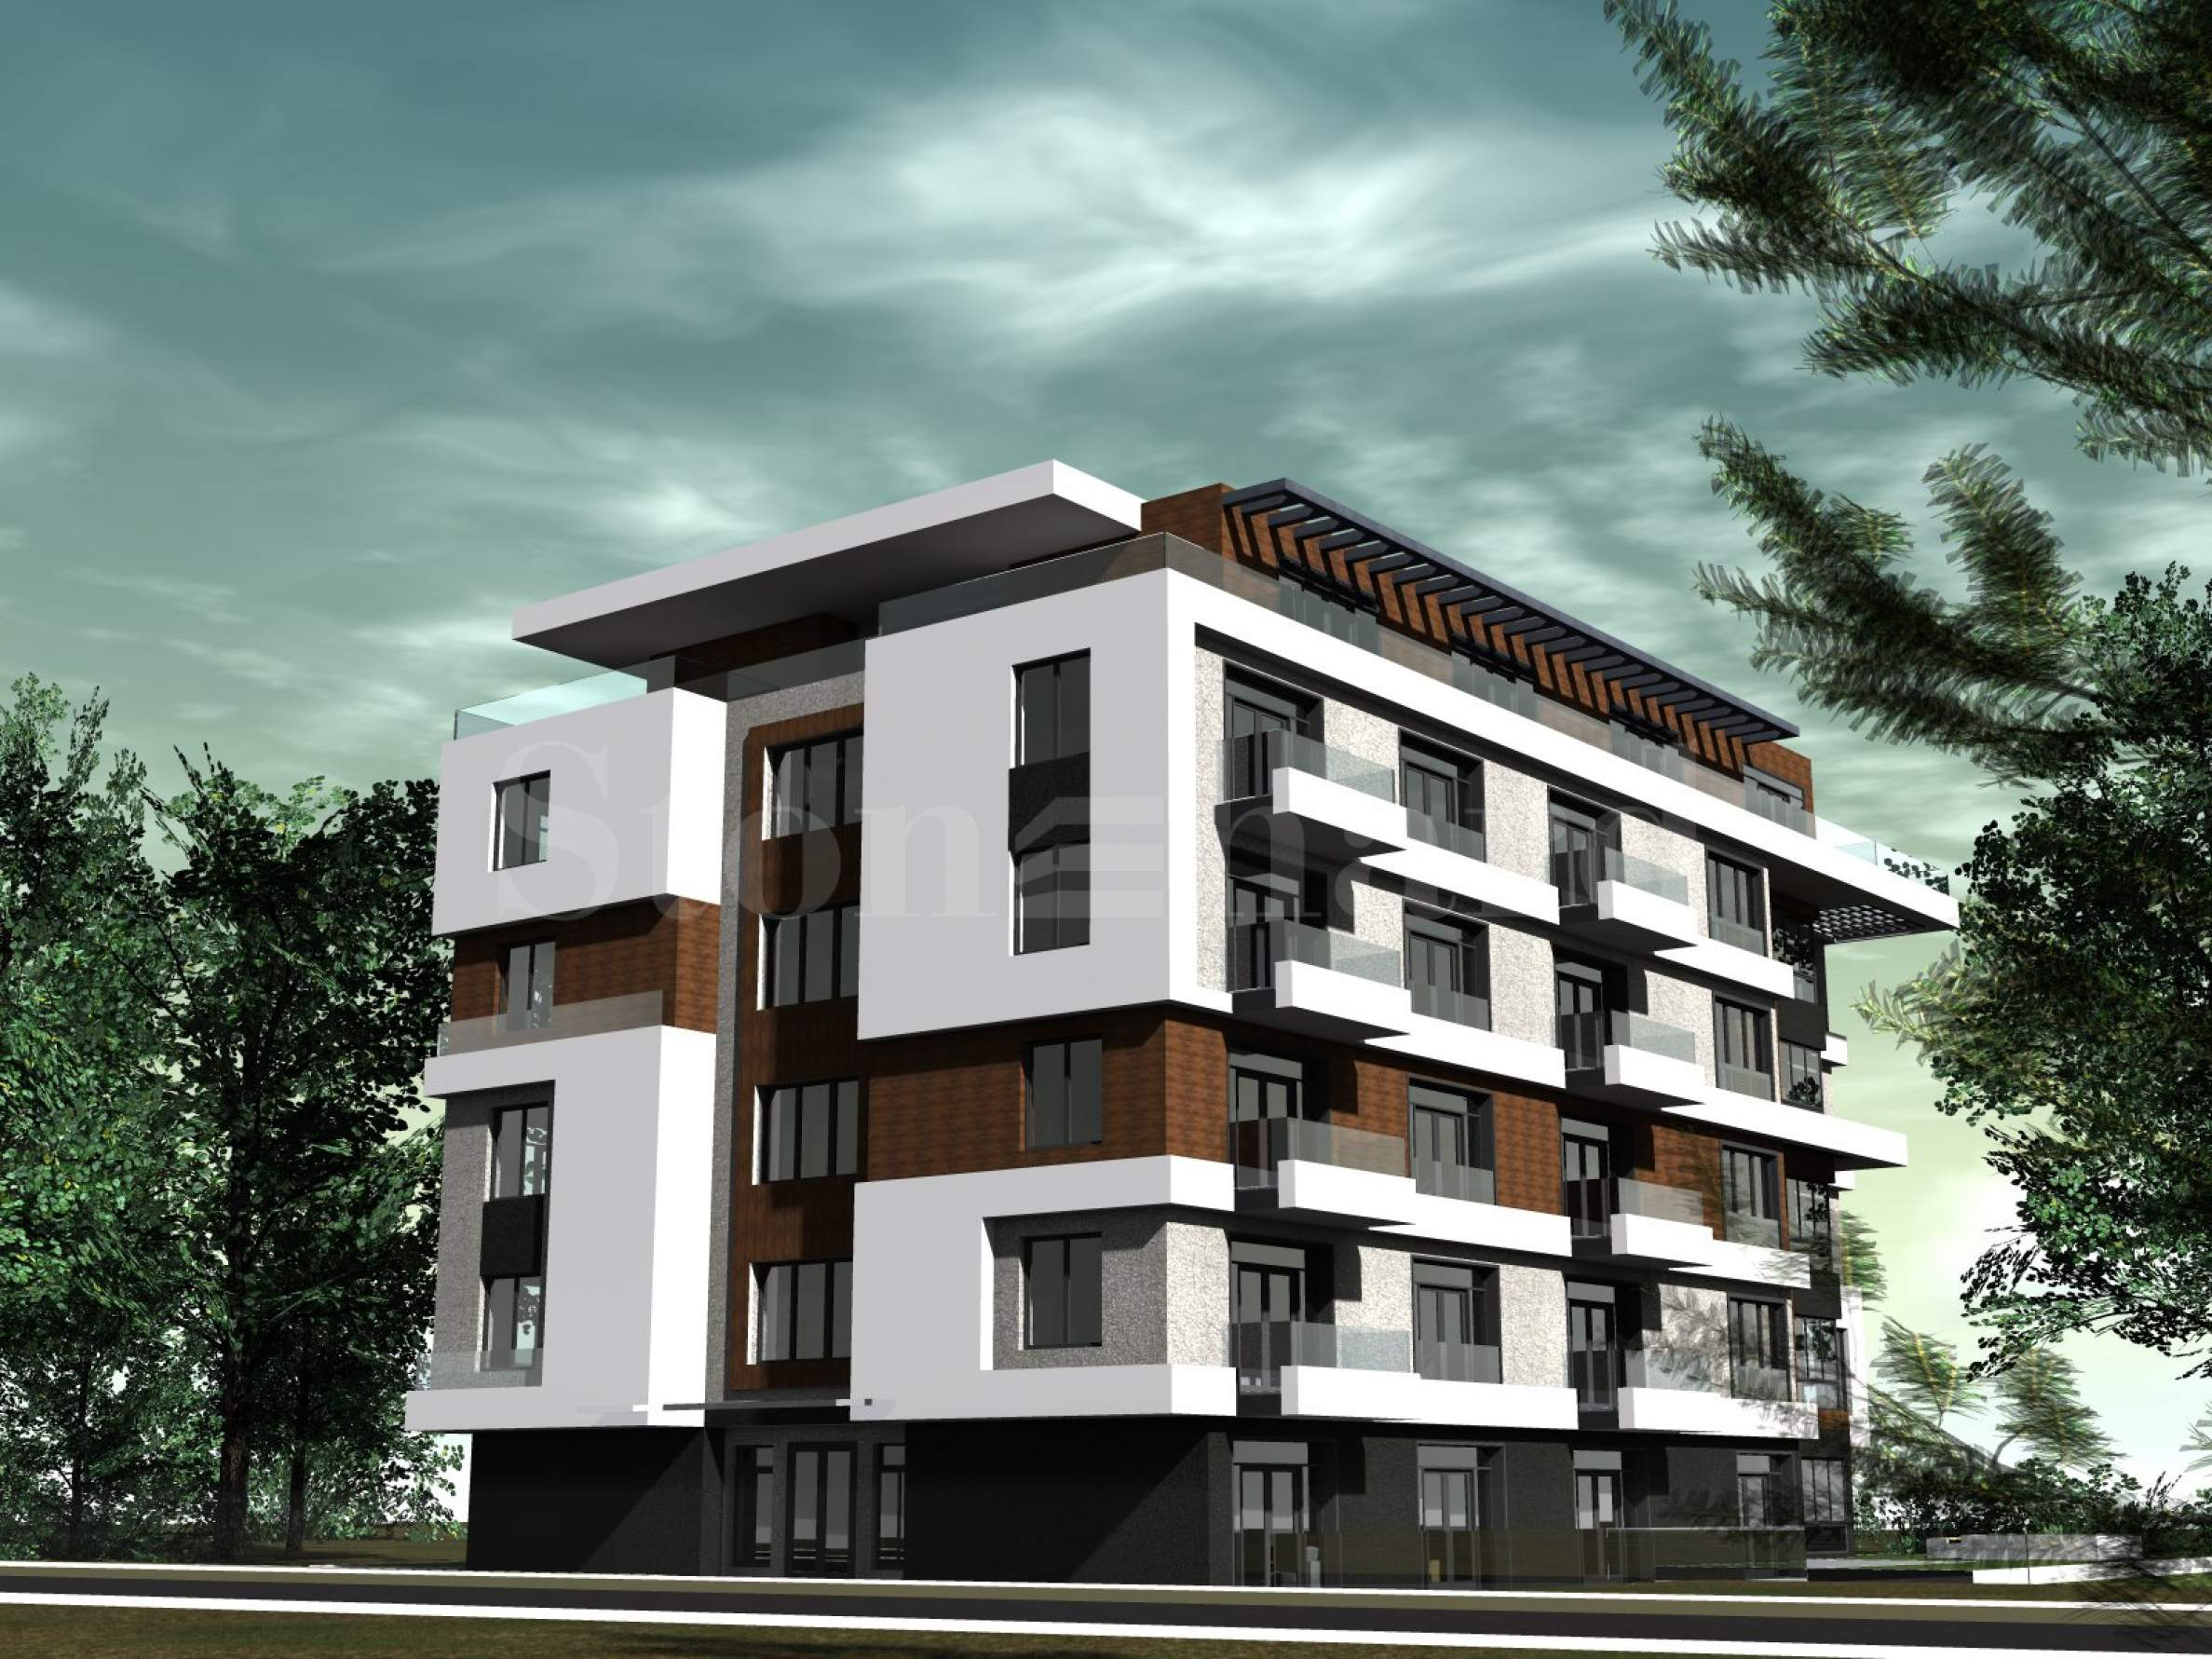 Elegant residential building with nice architecture in Dianabad District1 - Stonehard